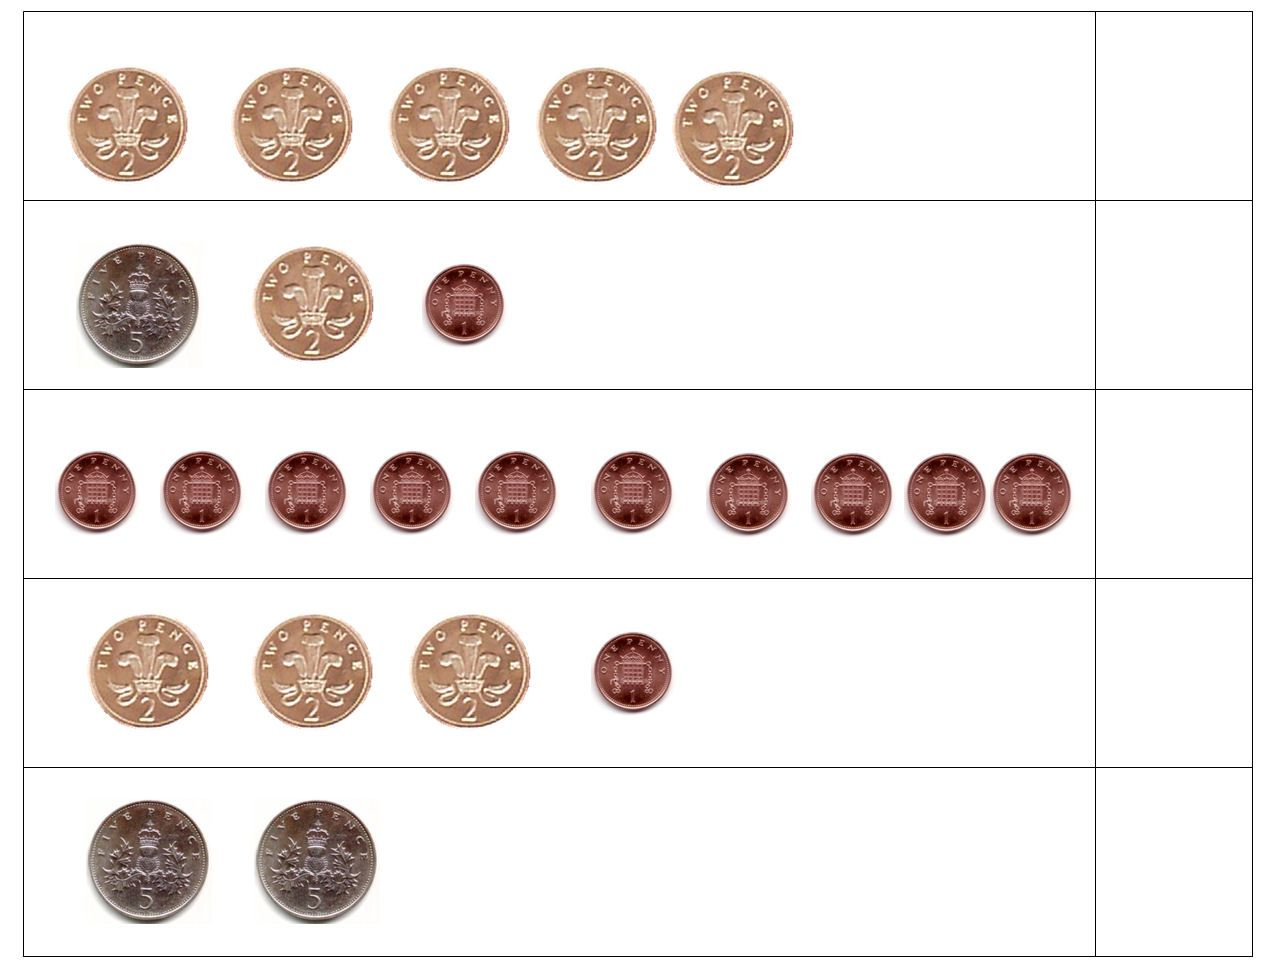 Simple Counting Money Worksheets For Adding Up Different Amounts Using A Range Of Coins